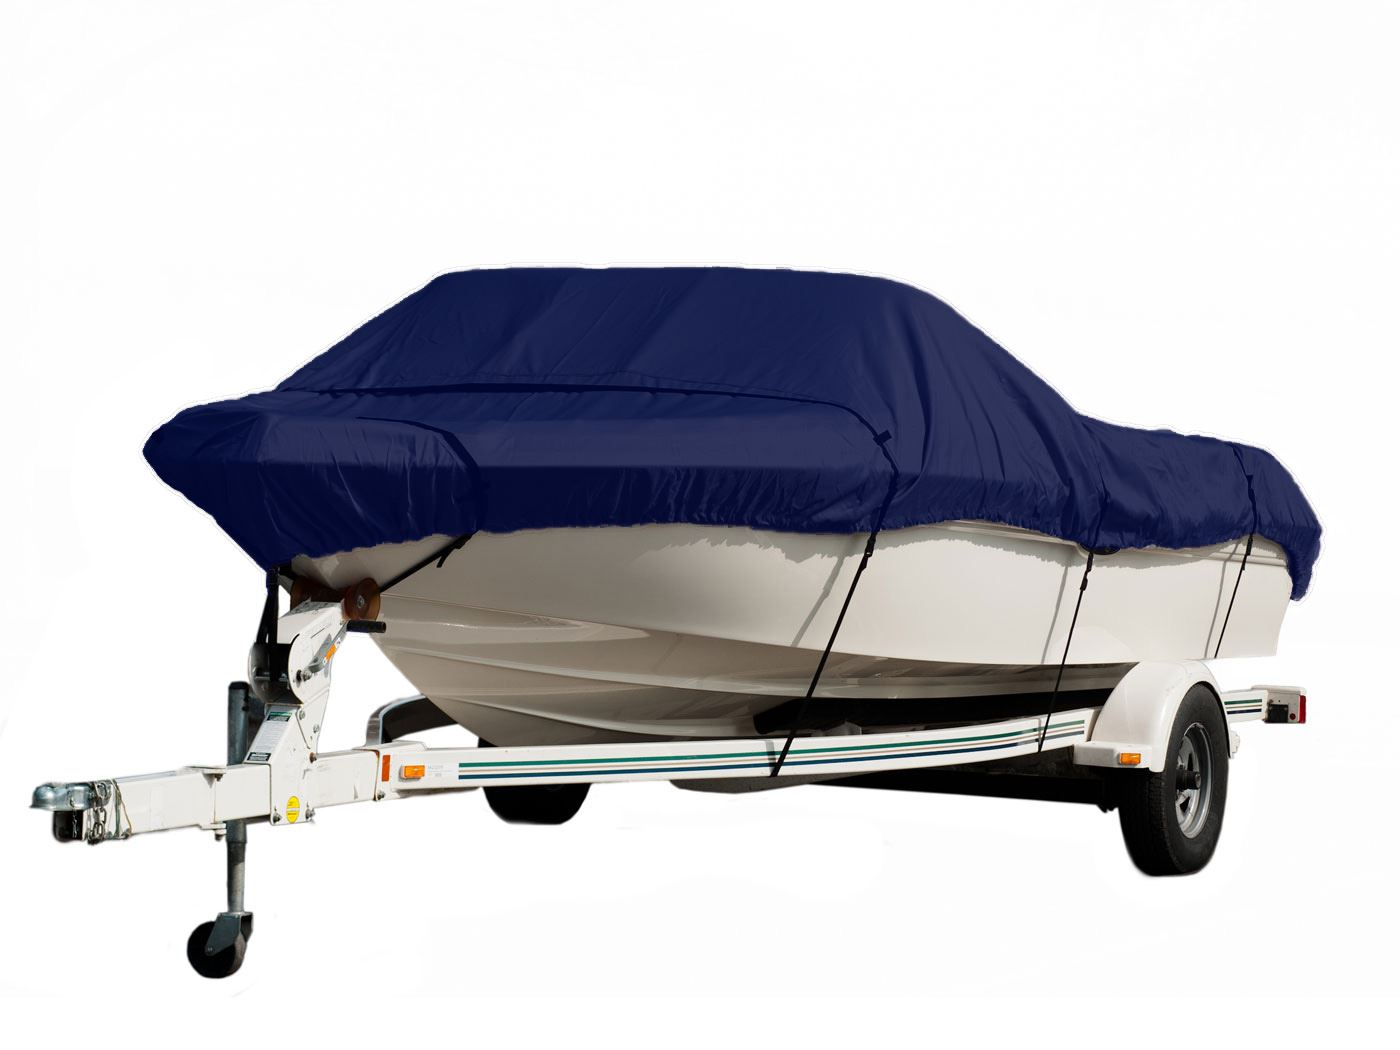 Trailerable Grey New Komo Covers 17-20/' Pontoon Boat Cover